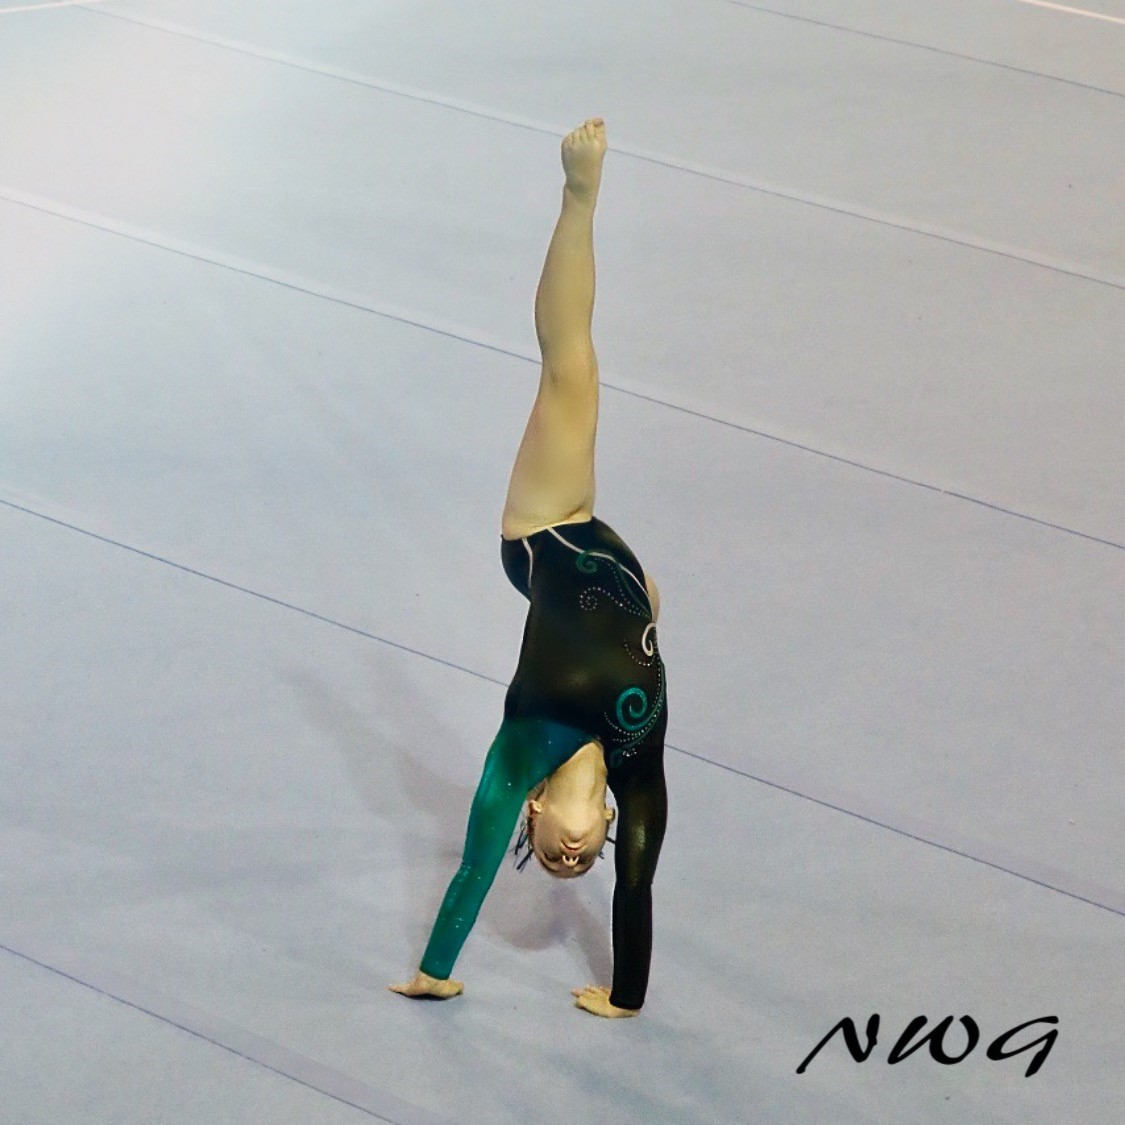 #nwgmountisa, #mountisagymnastics, #mountisaacro, #mountisaacrobatics, #mountisatumbling, #northwestgymnastics, North West Gymnastics, NWG,